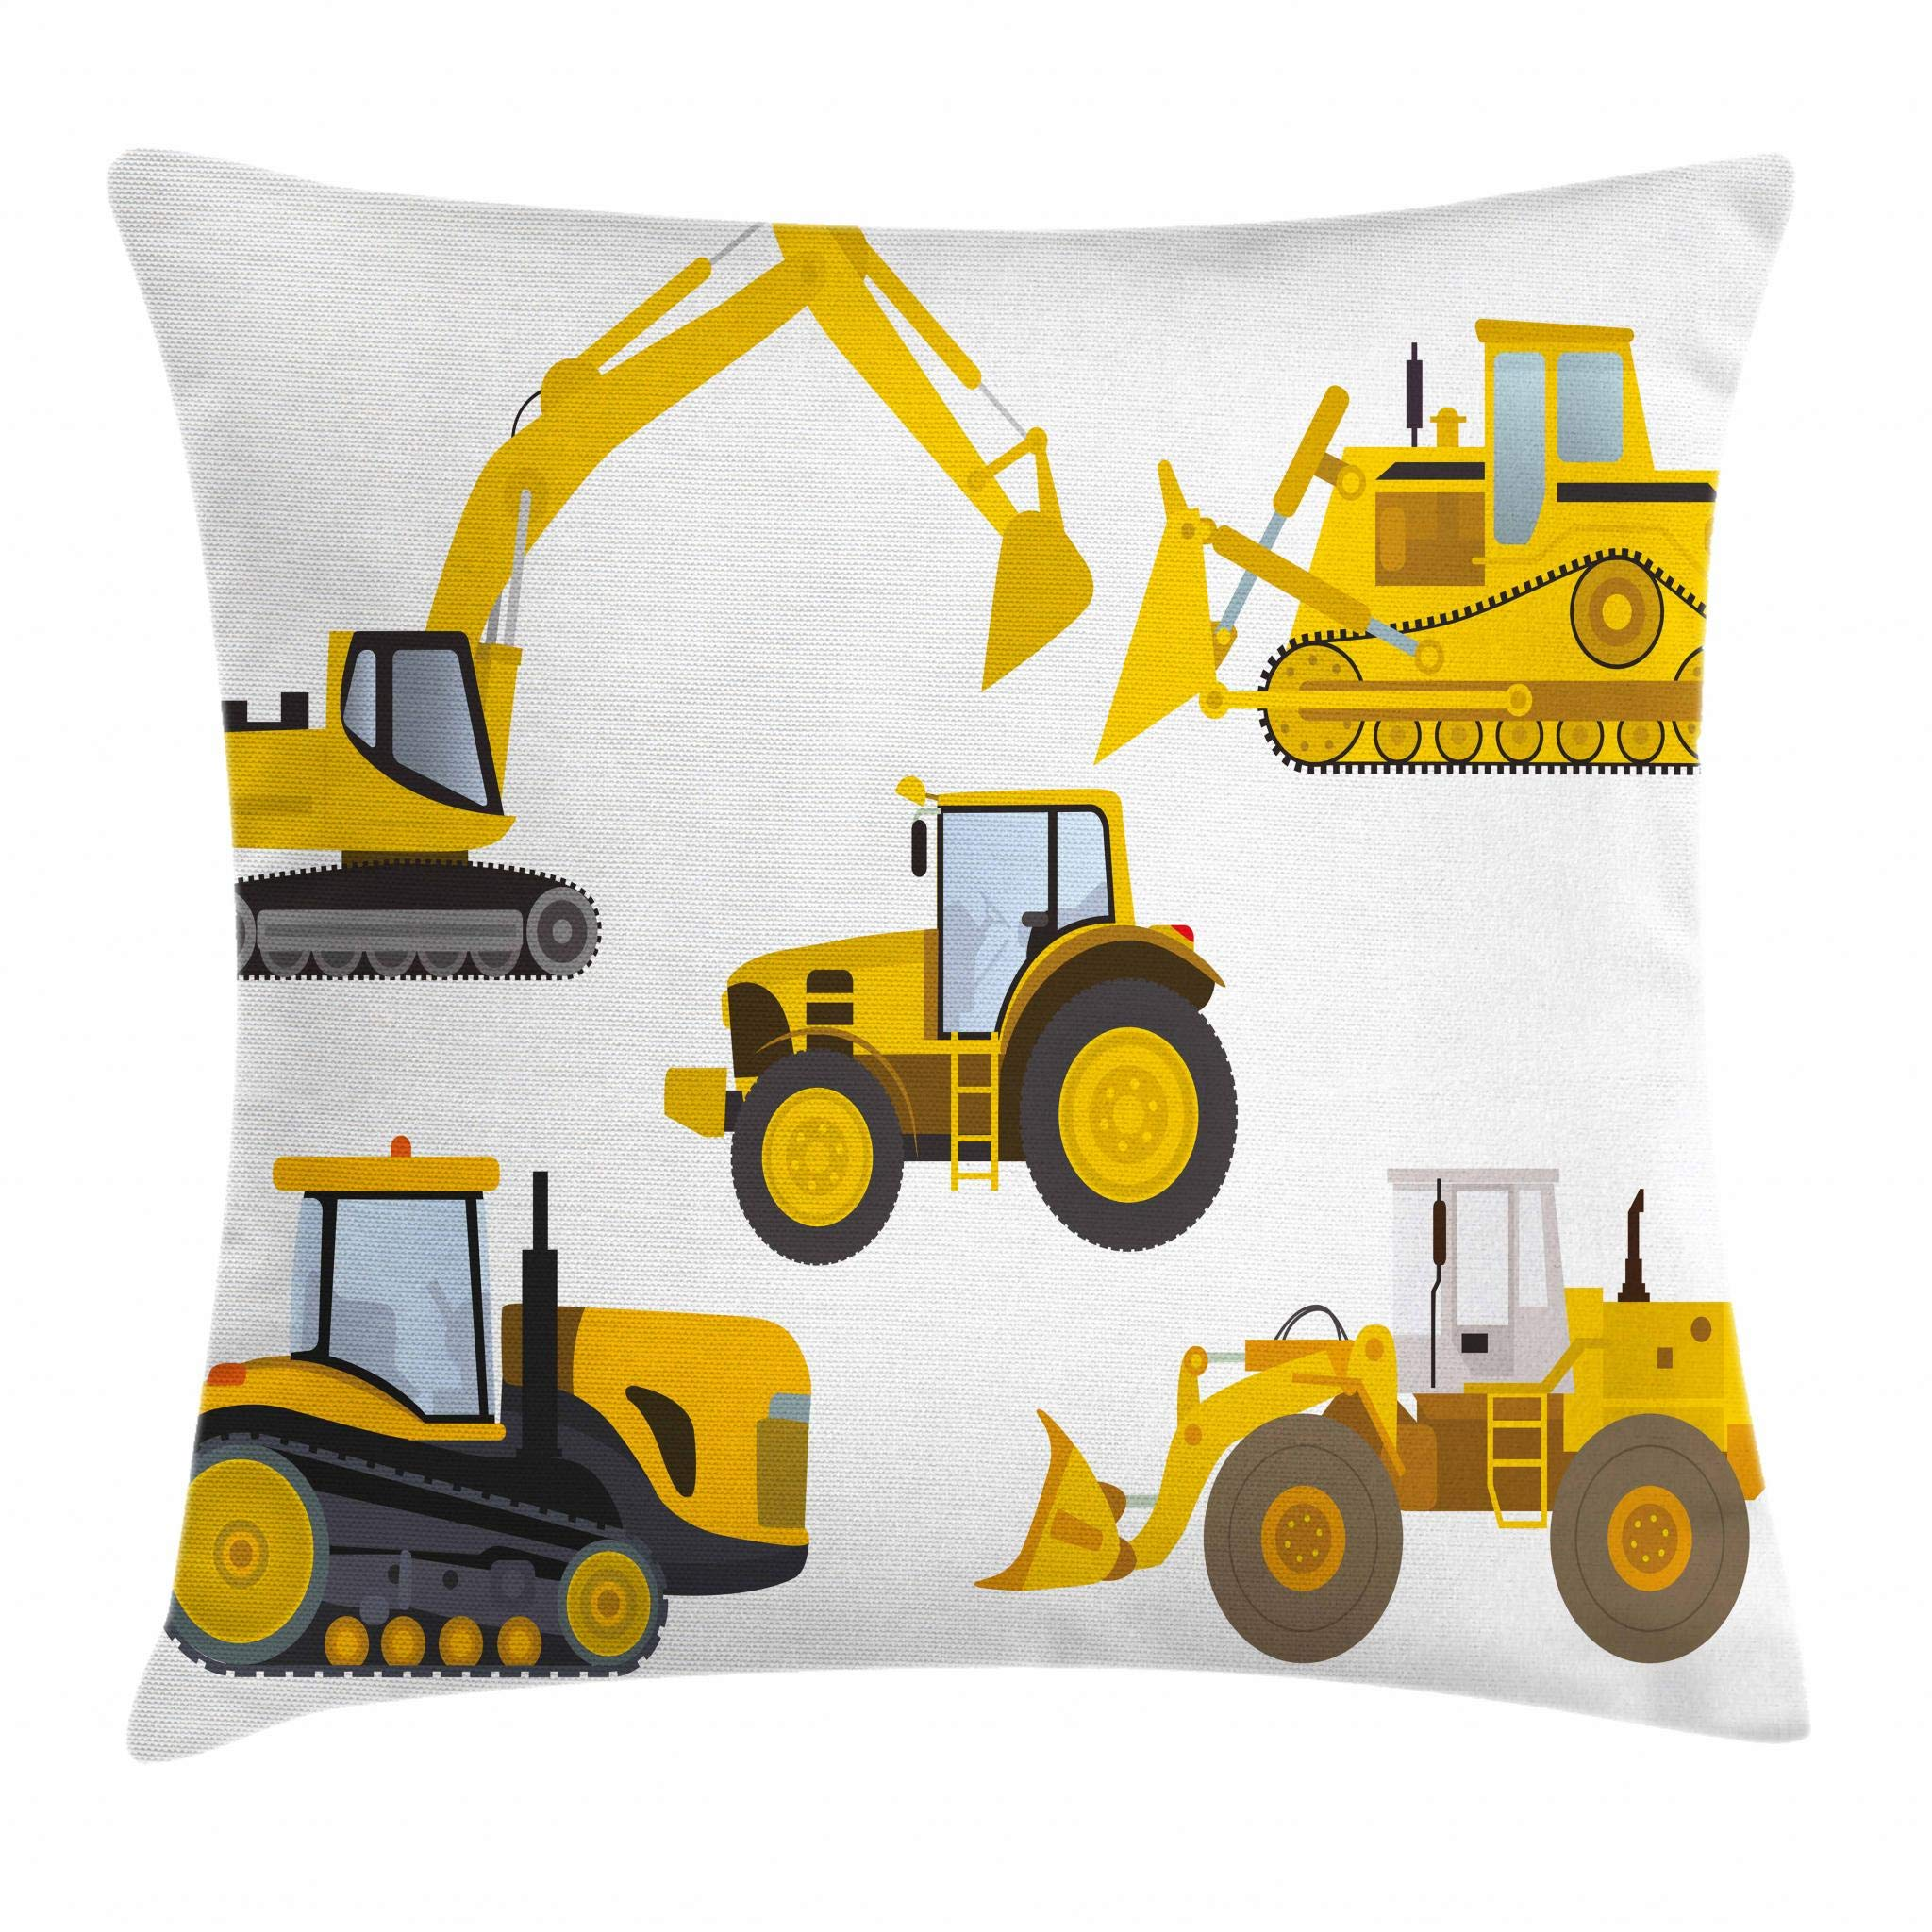 Lunarable Boy's Room Throw Pillow Cushion Cover by, Animation Inspired Heavy Machinery Drawing Construction Cartoon Bulldozer Print, Decorative Square Accent Pillow Case, 16 X 16 Inches, Yellow